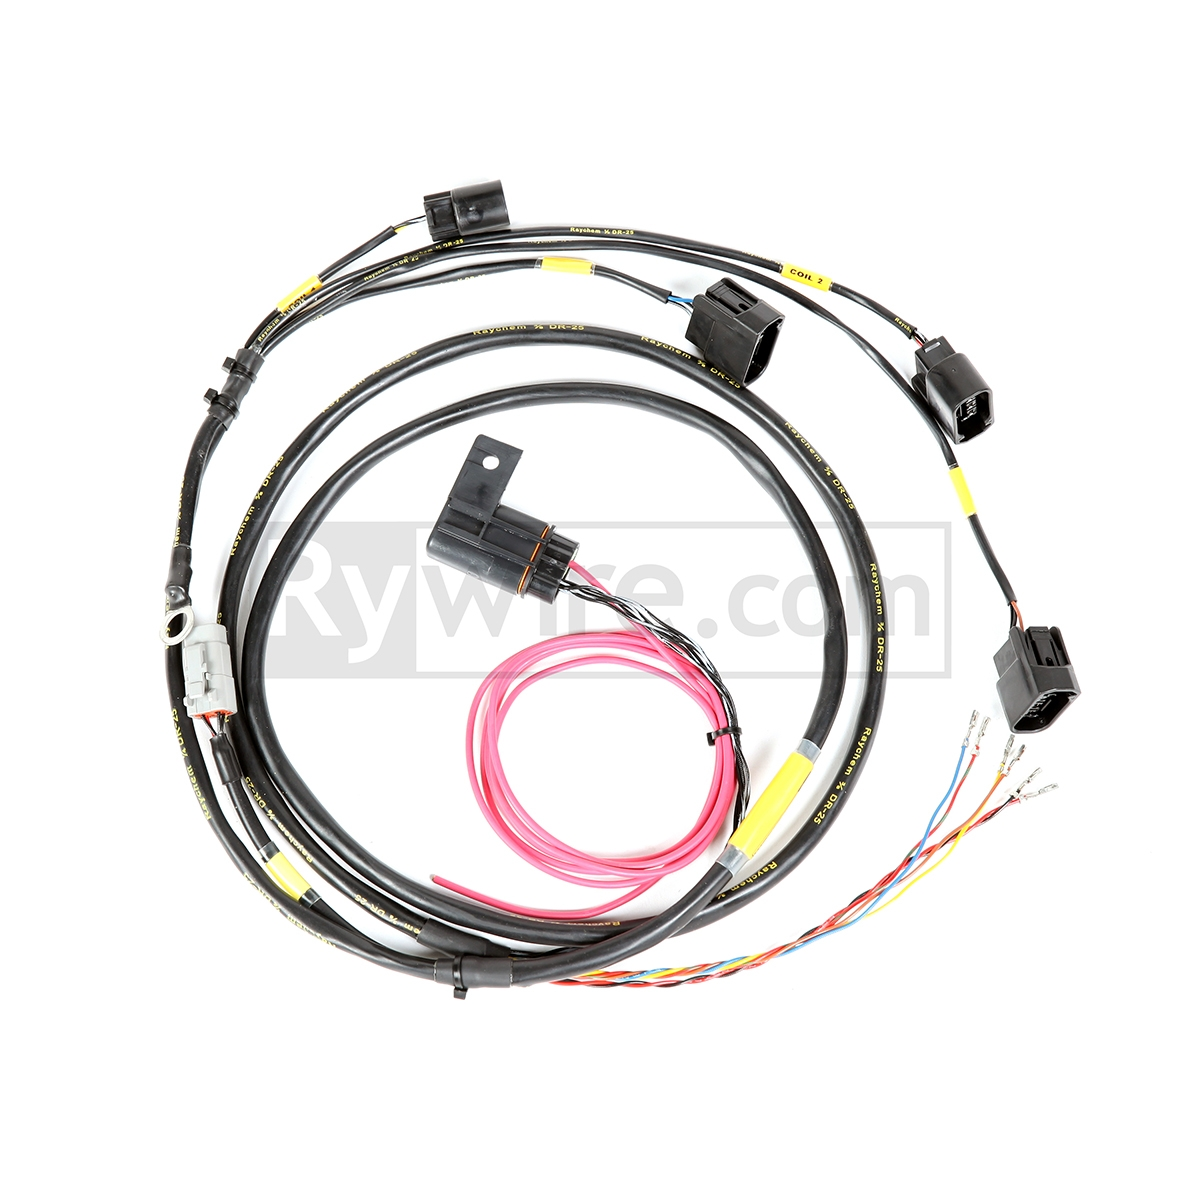 COP RSX S2000 coil harness 2?1402939111 rsx s2000 coil harness s2000 wiring harness at aneh.co